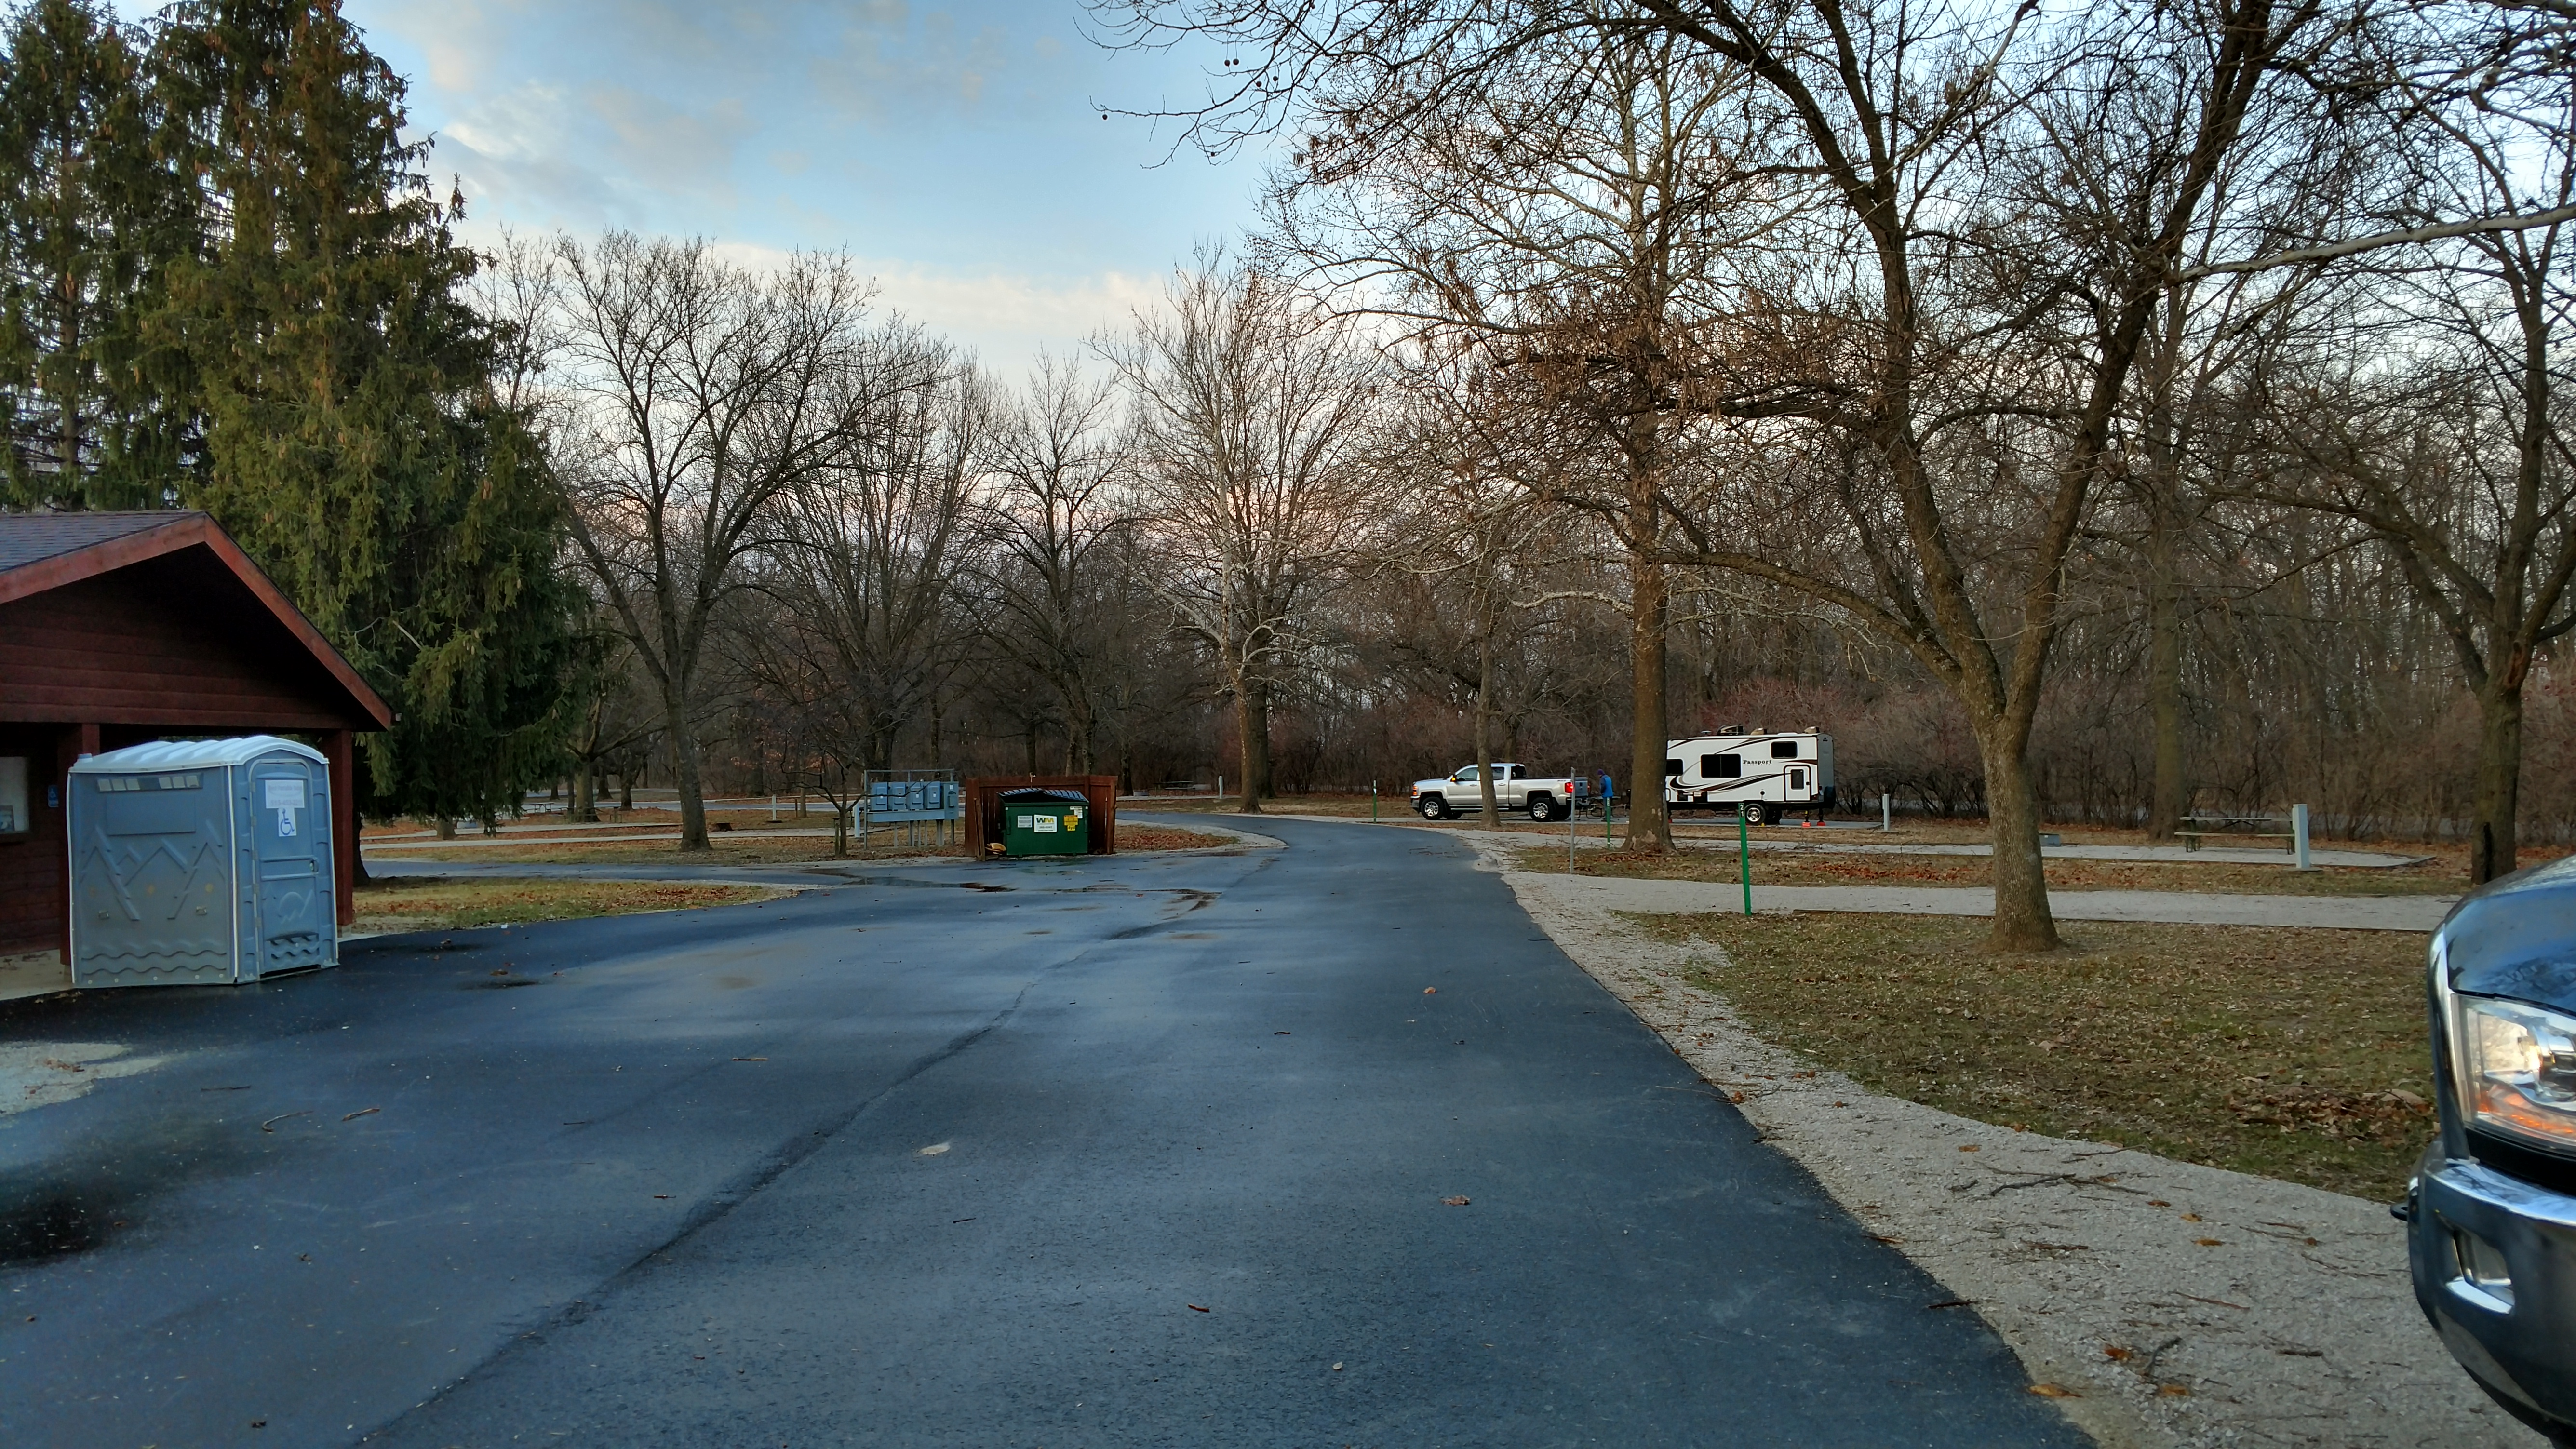 Main loop at Yellow Banks Campground 1, Des Moines, IA